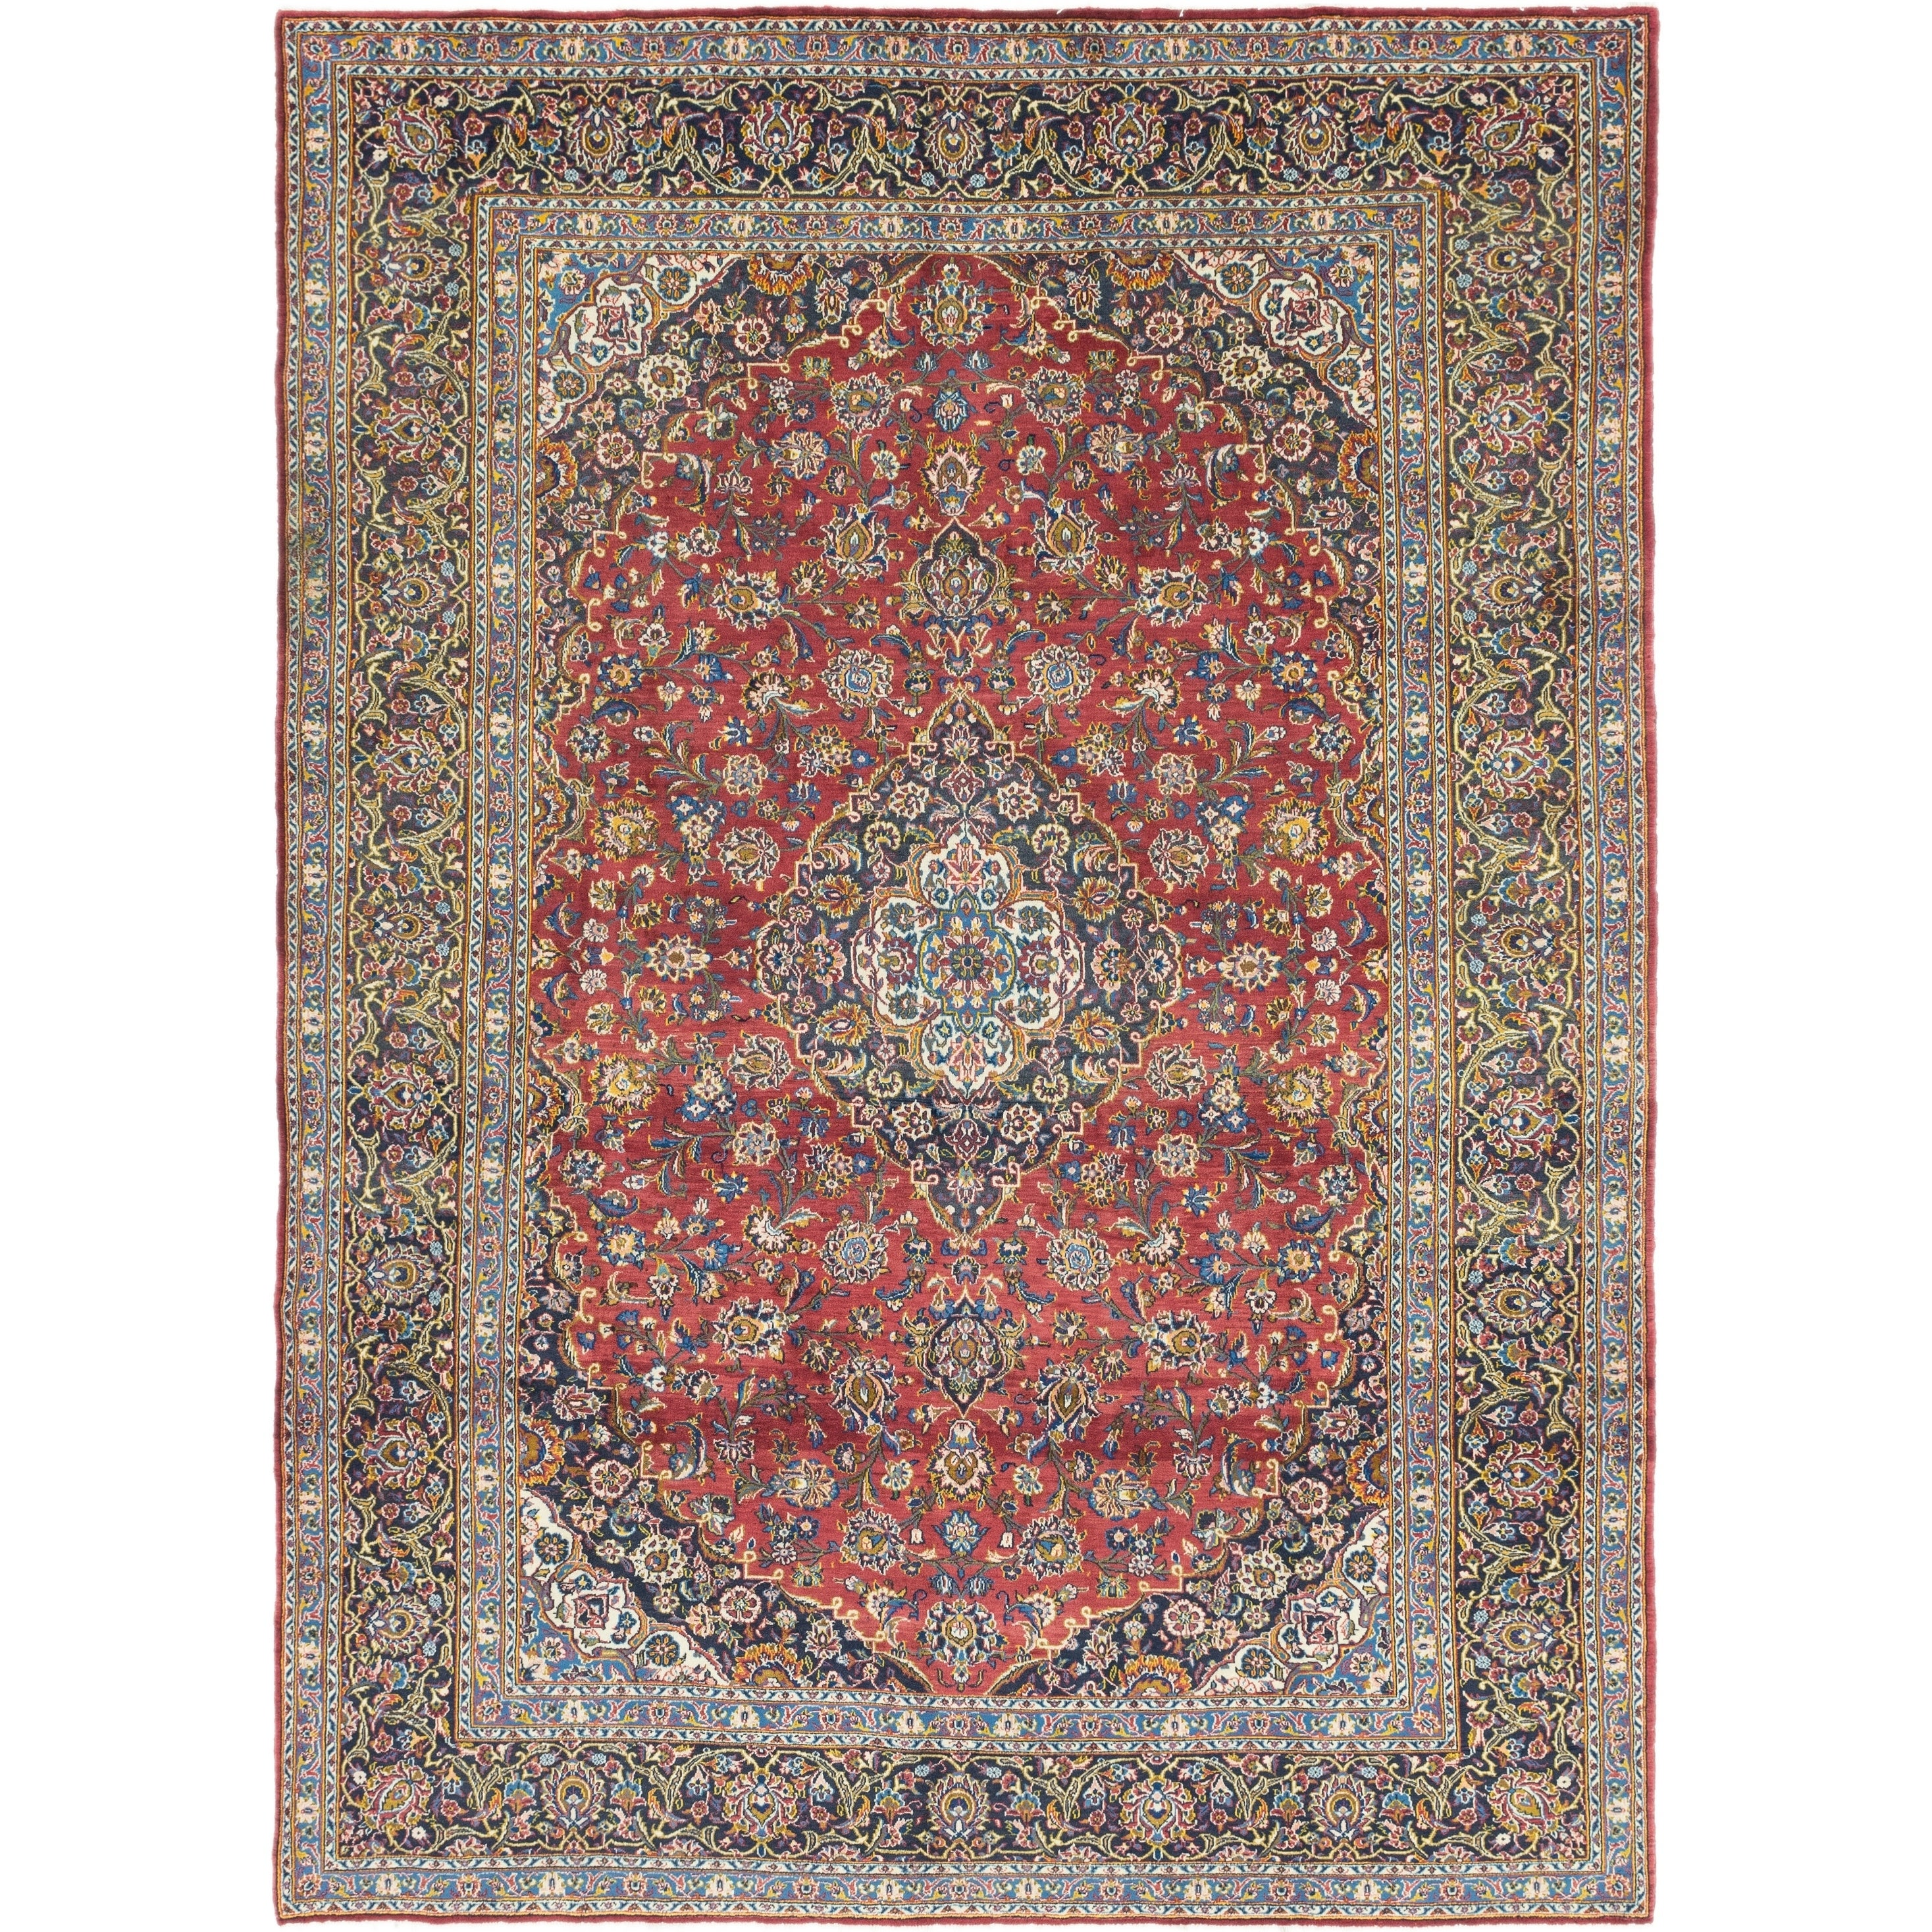 Hand Knotted Kashan Antique Wool Area Rug - 8 10 x 12 4 (Red - 8 10 x 12 4)